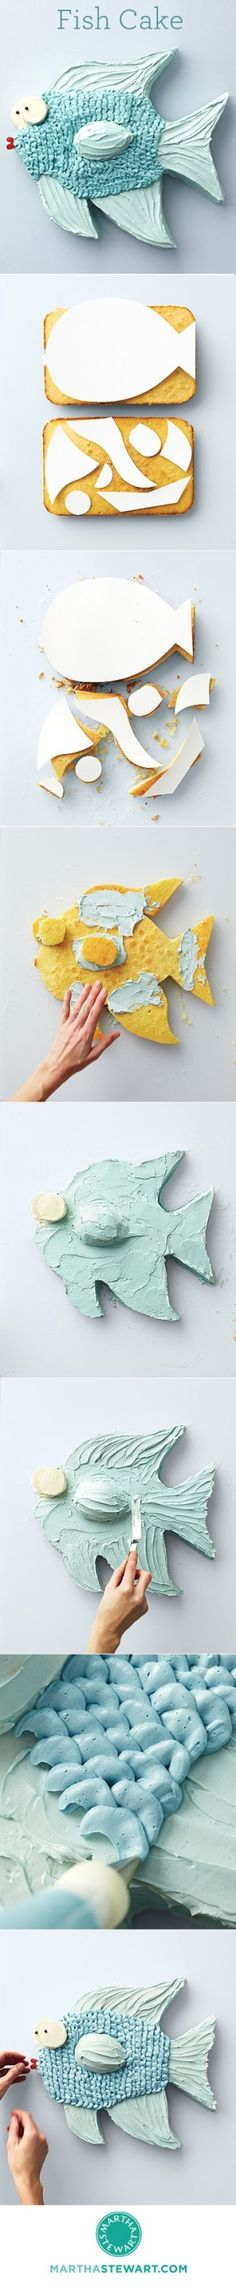 how to make a fish cake. by stacey